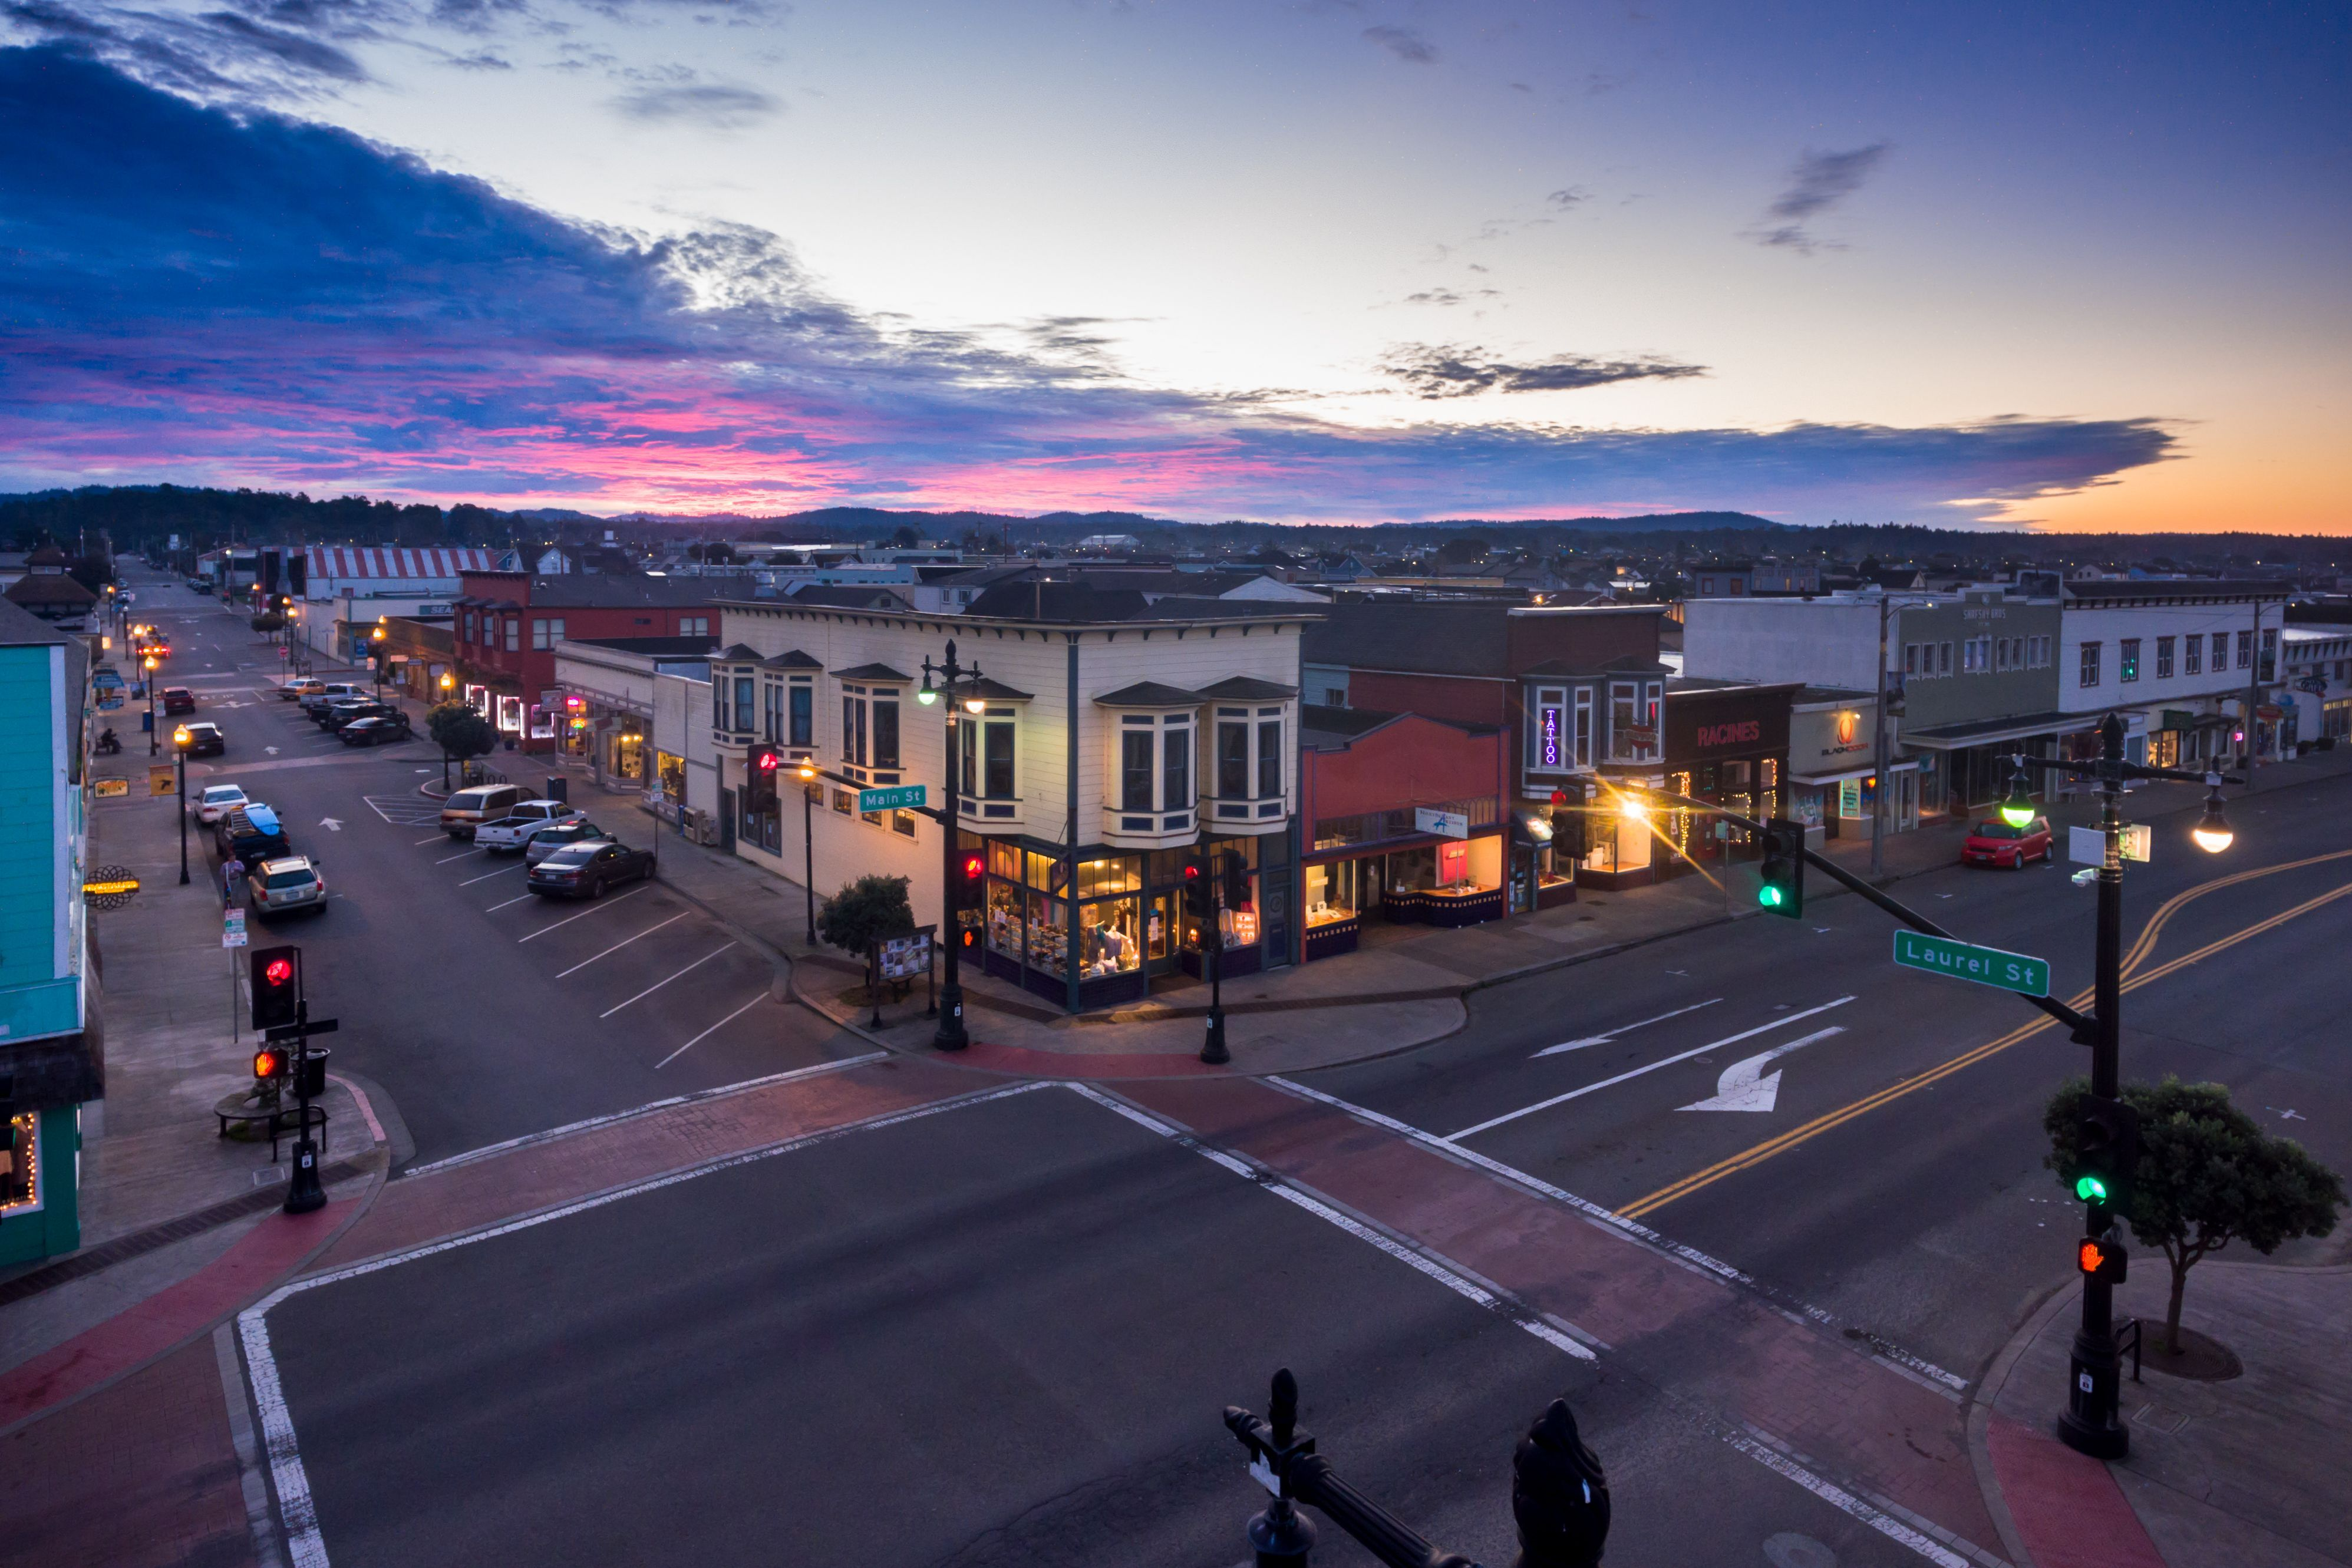 Downtown Fort Bragg Bursting With Vivid Color And Full Of Life